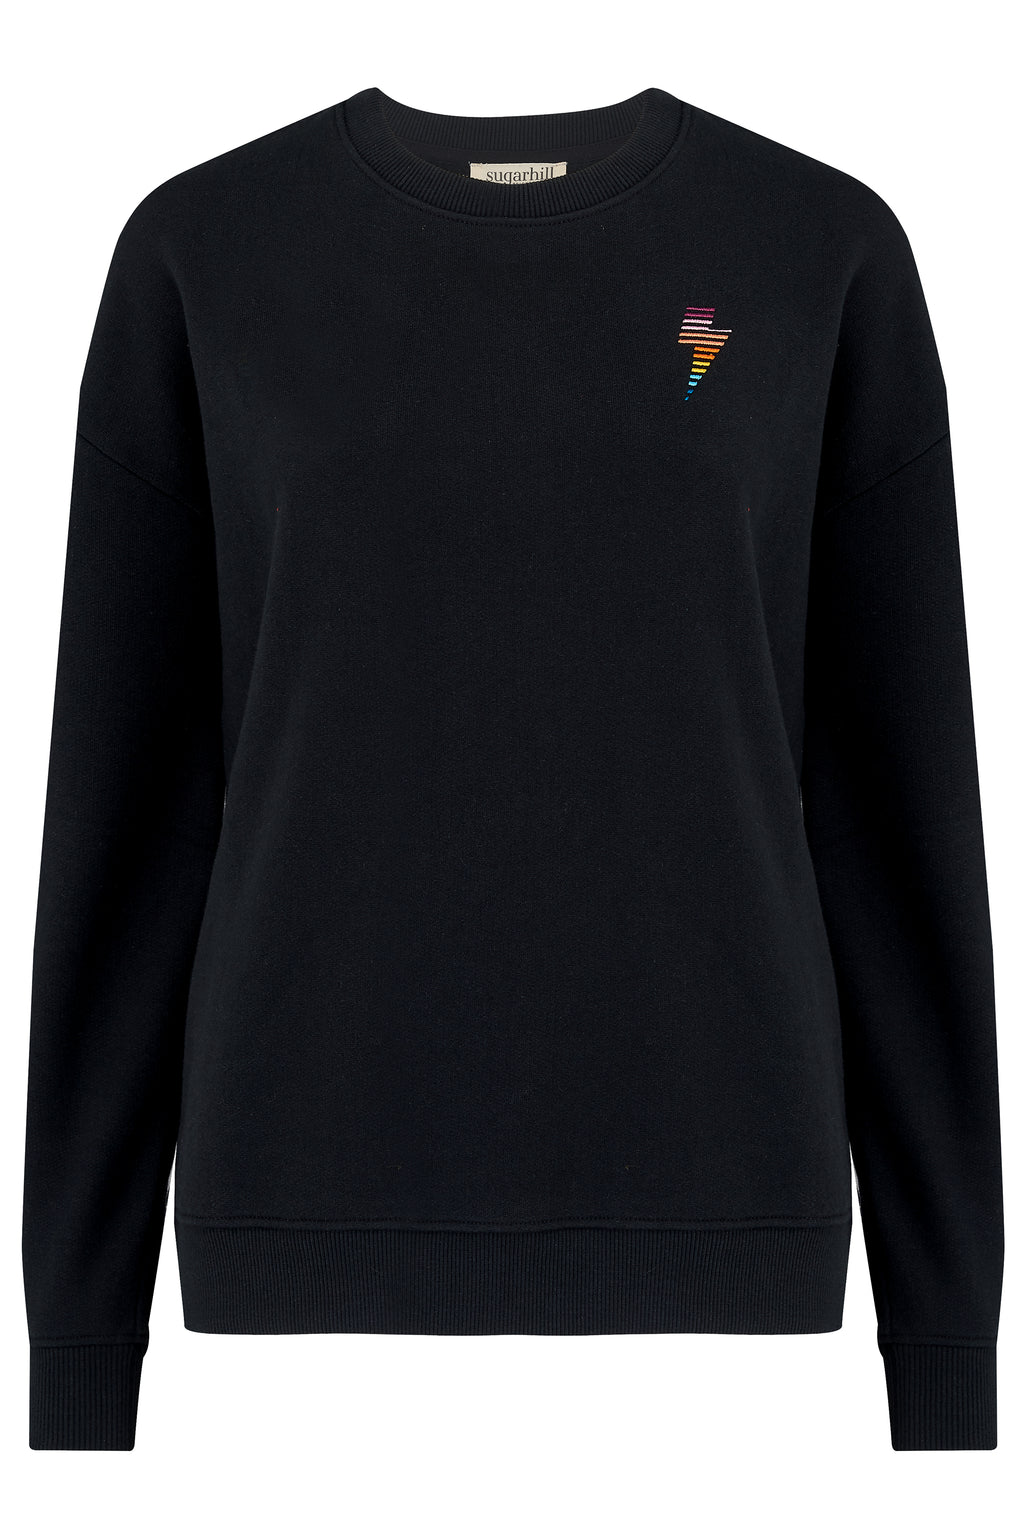 Sugarhill Brighton Rainbow Lightning Noah Sweatshirt